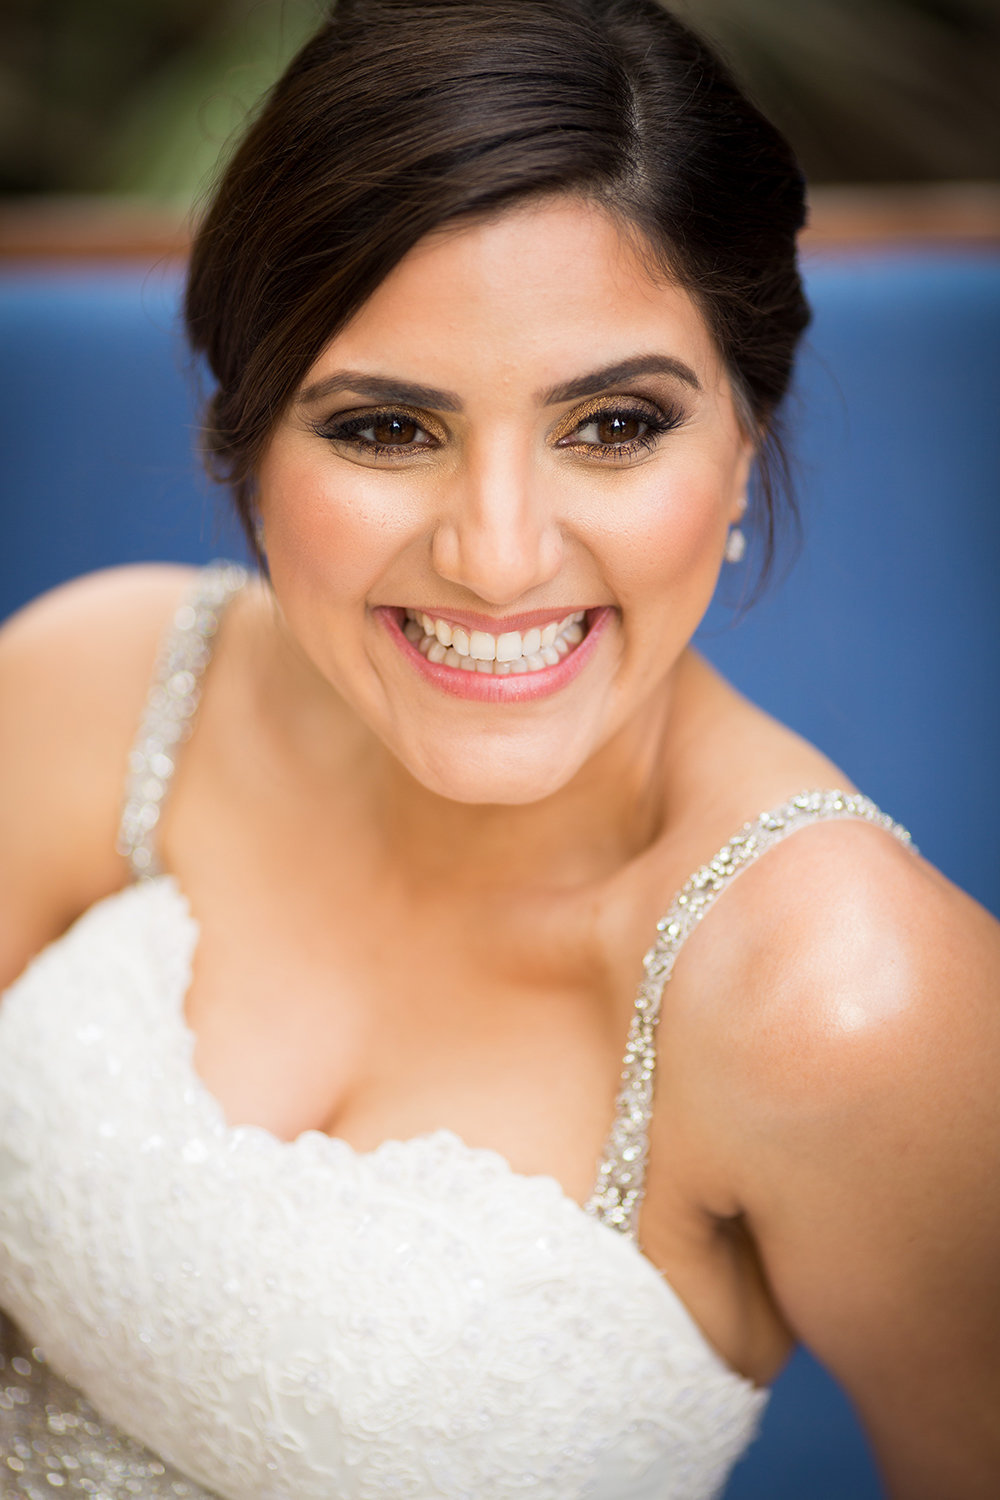 Natural lighting portrait of a beautiful bride